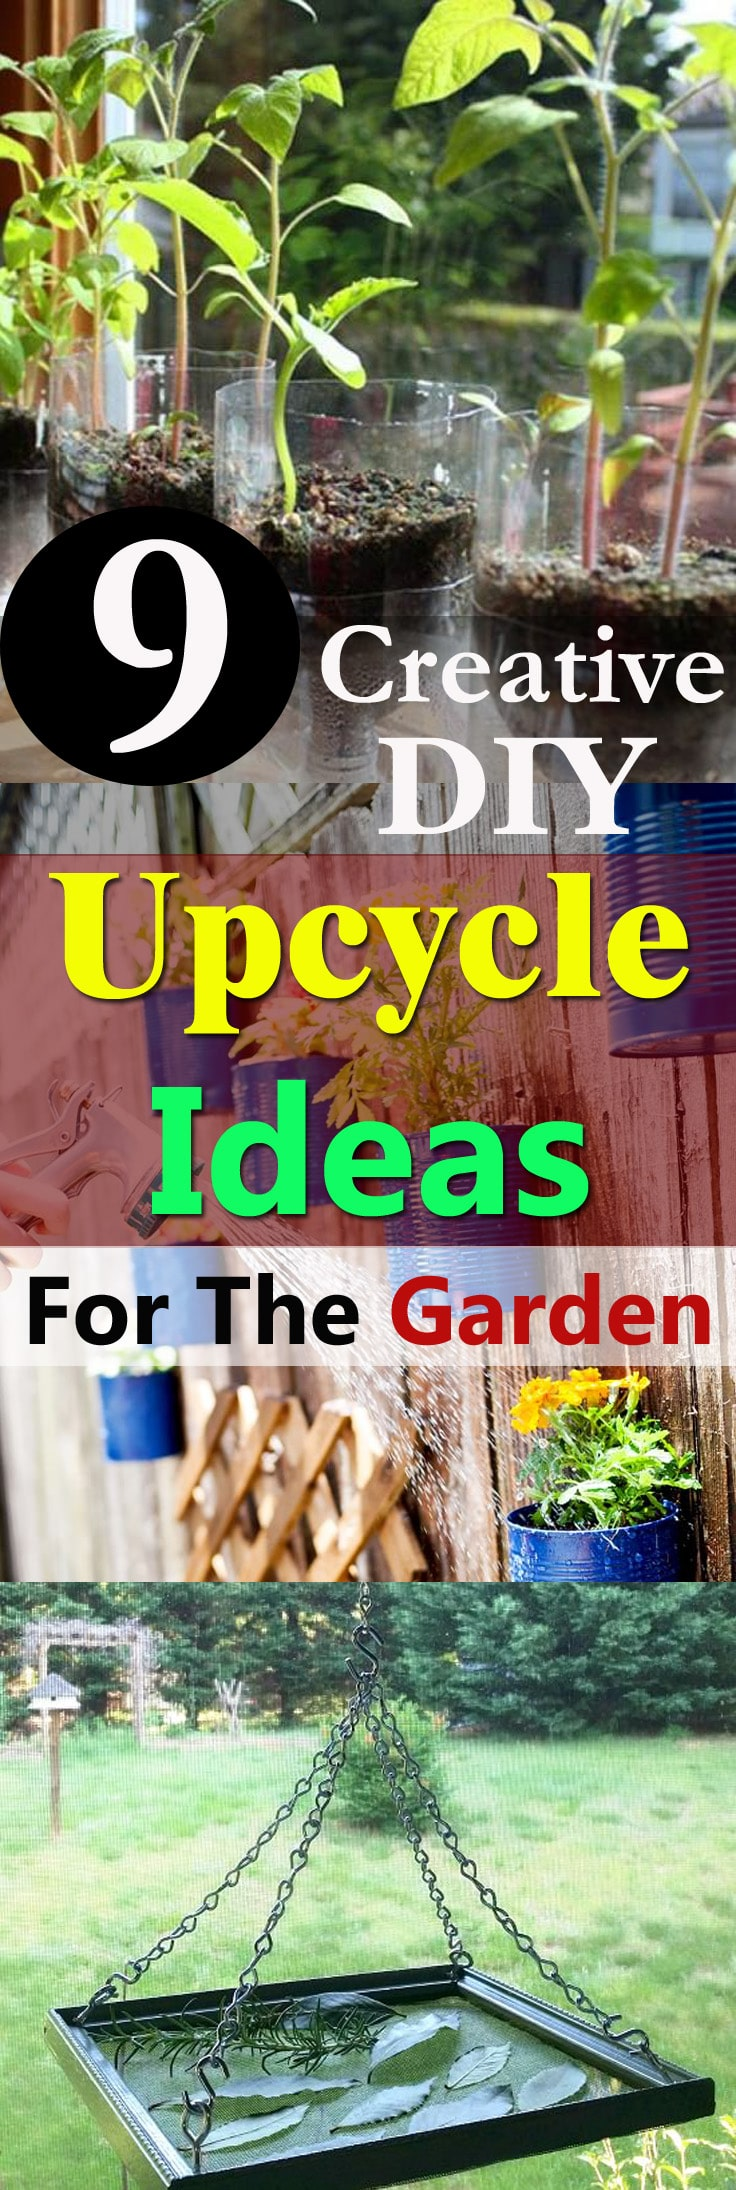 If you like to reuse and recycle your old things, take a look at these DIY Upcycle Ideas for the Garden!